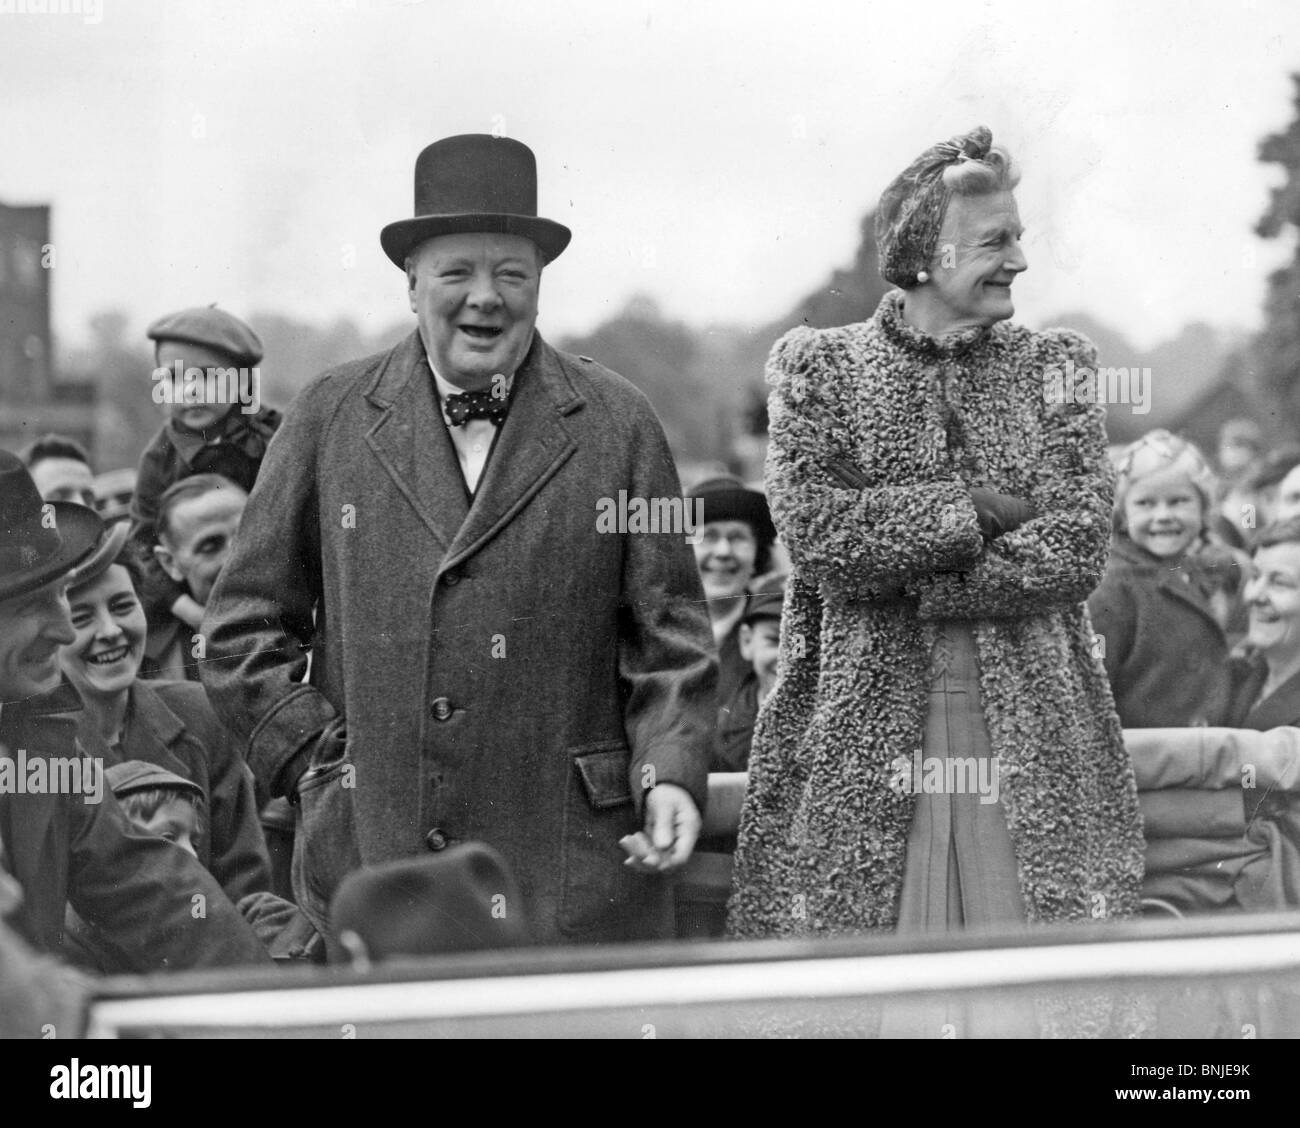 Churchill iron curtain speech cartoon - Winston Churchill Campaigning With Wife Clementine In The 1945 General Election In His Woodford Constituency